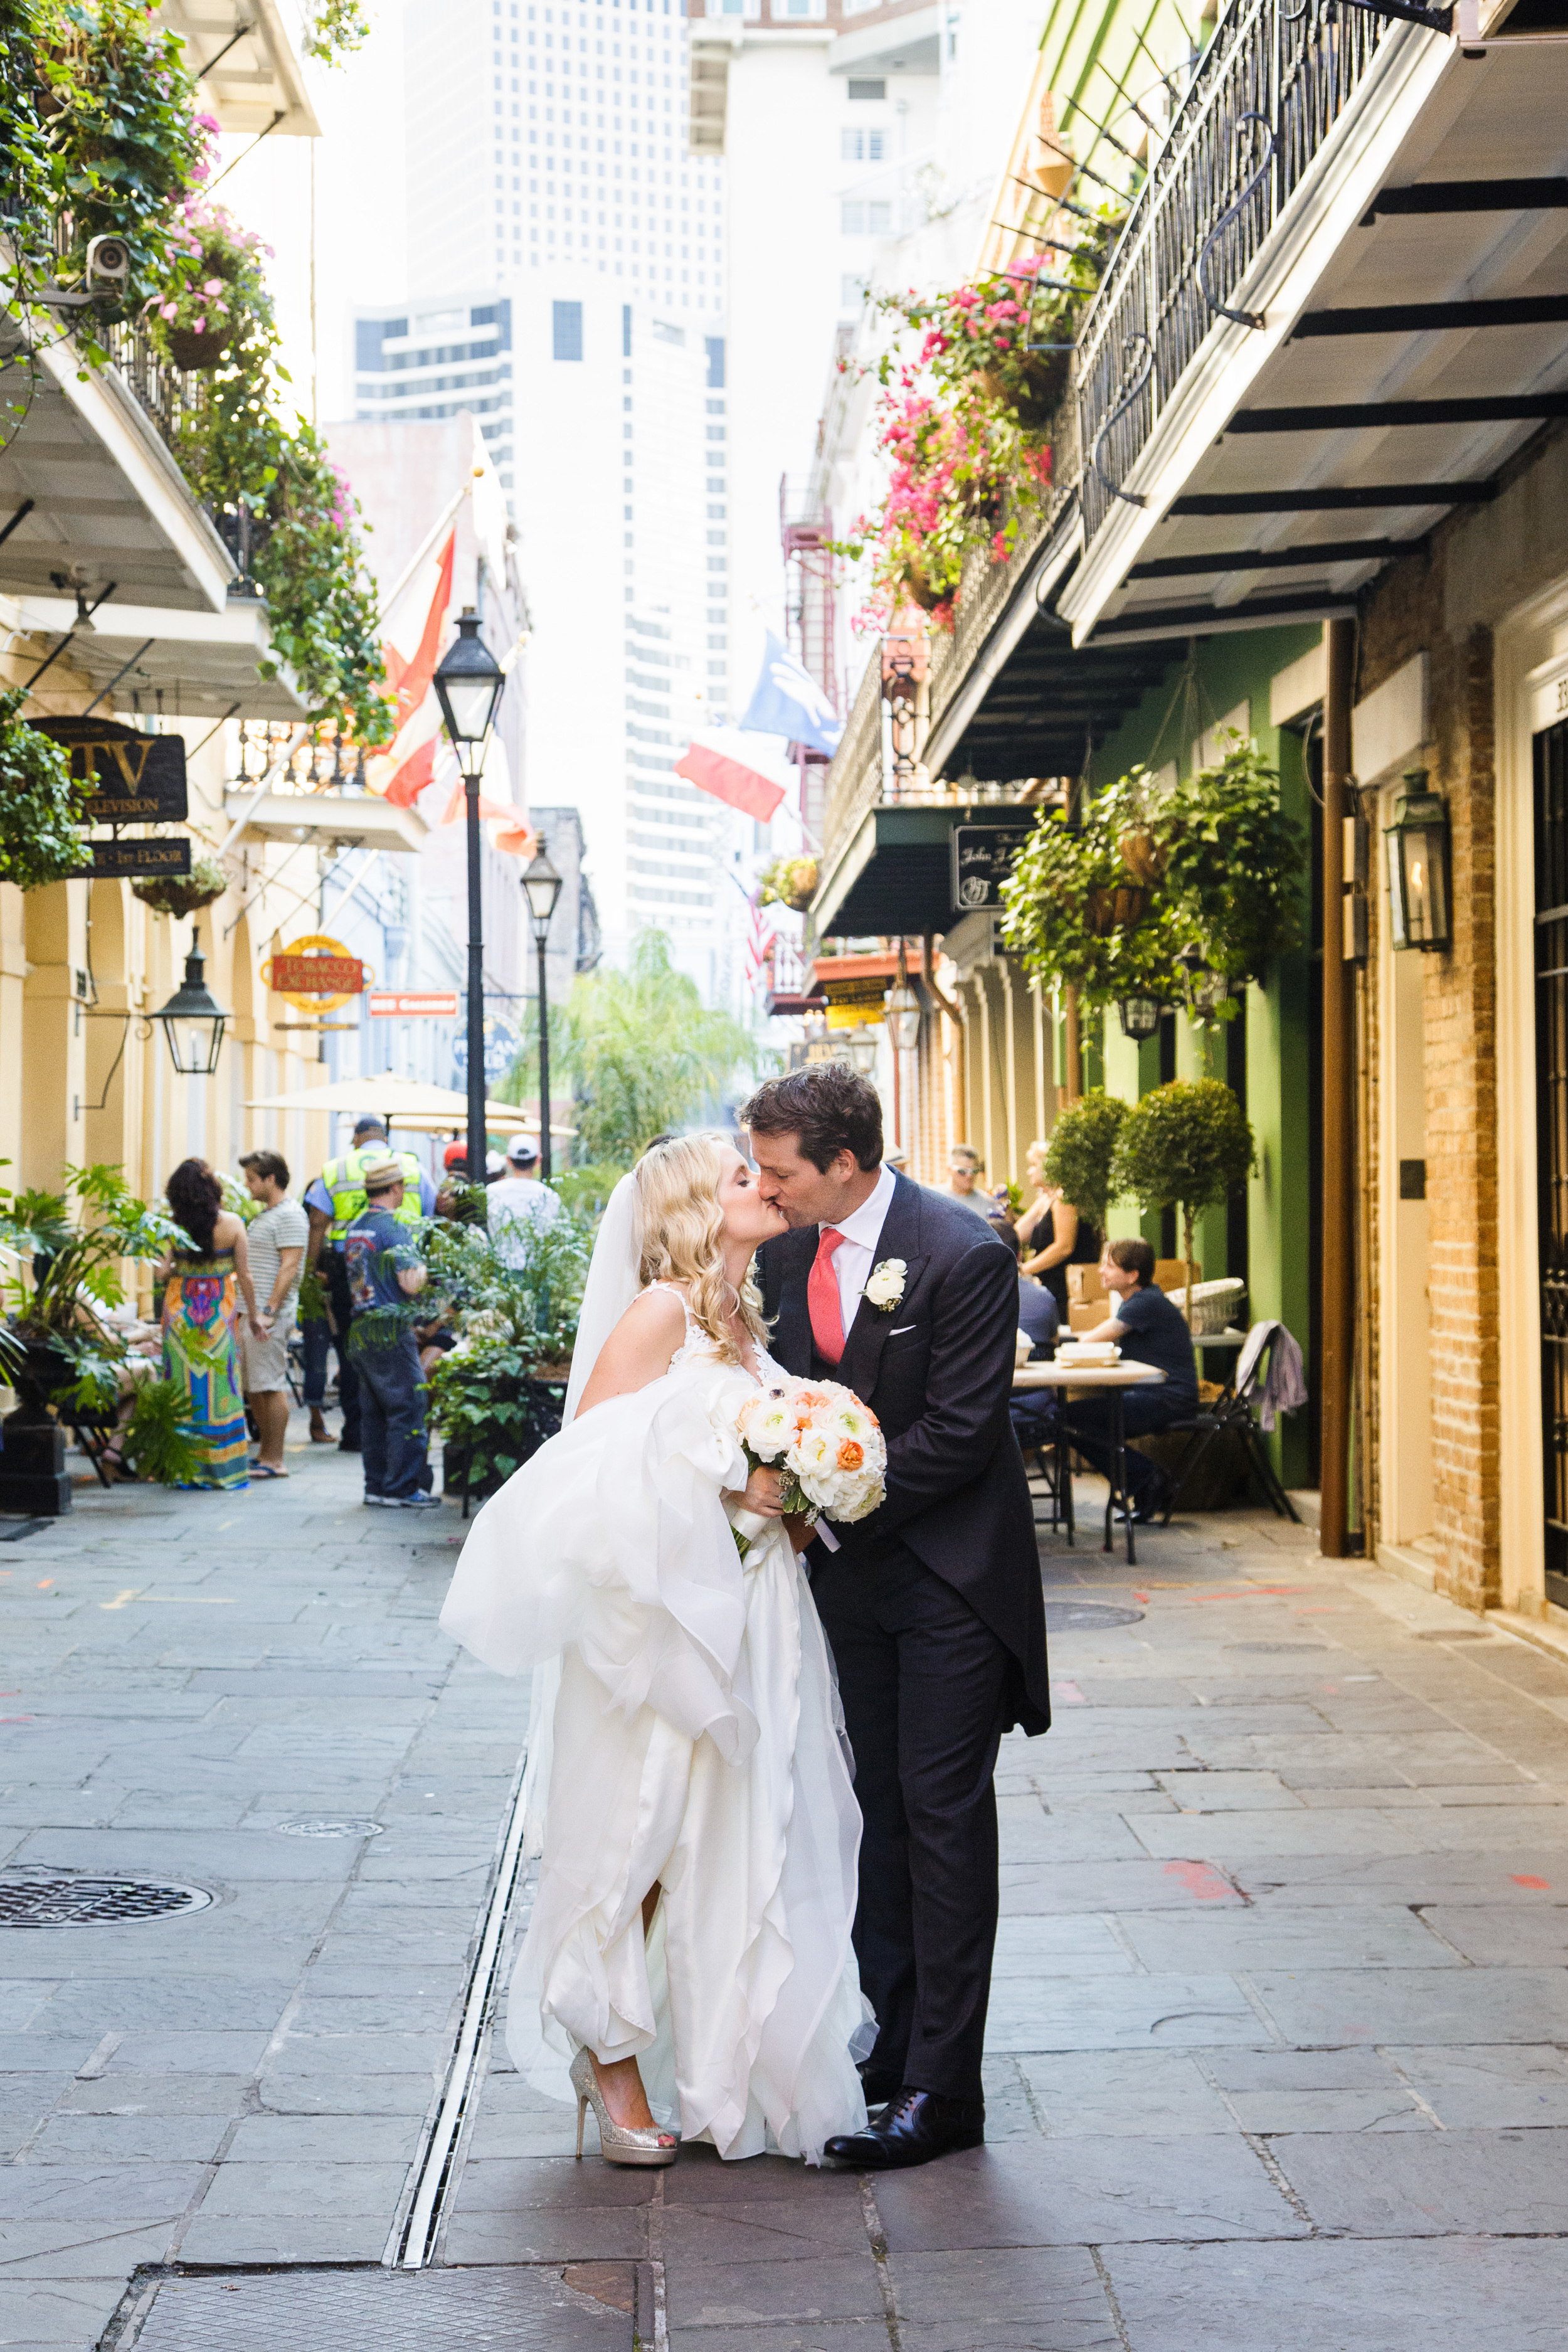 Applying for a Marriage License in New Orleans